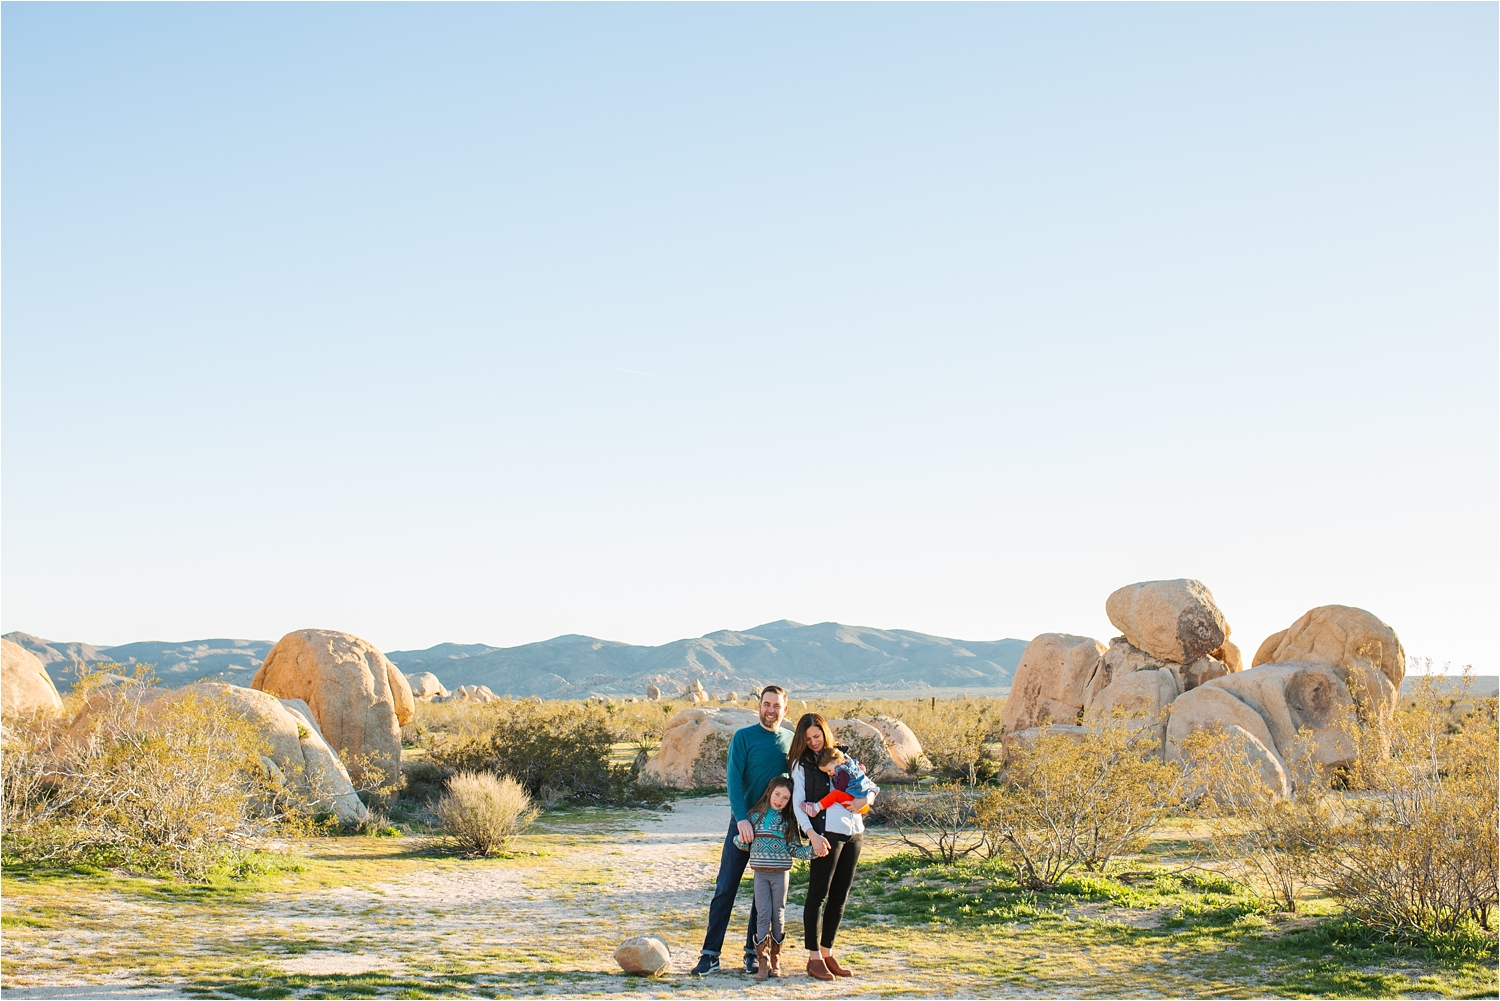 Lifesyle Photographer in Joshua Tree - Southern California Family Photographer - https://brittneyhannonphotography.com